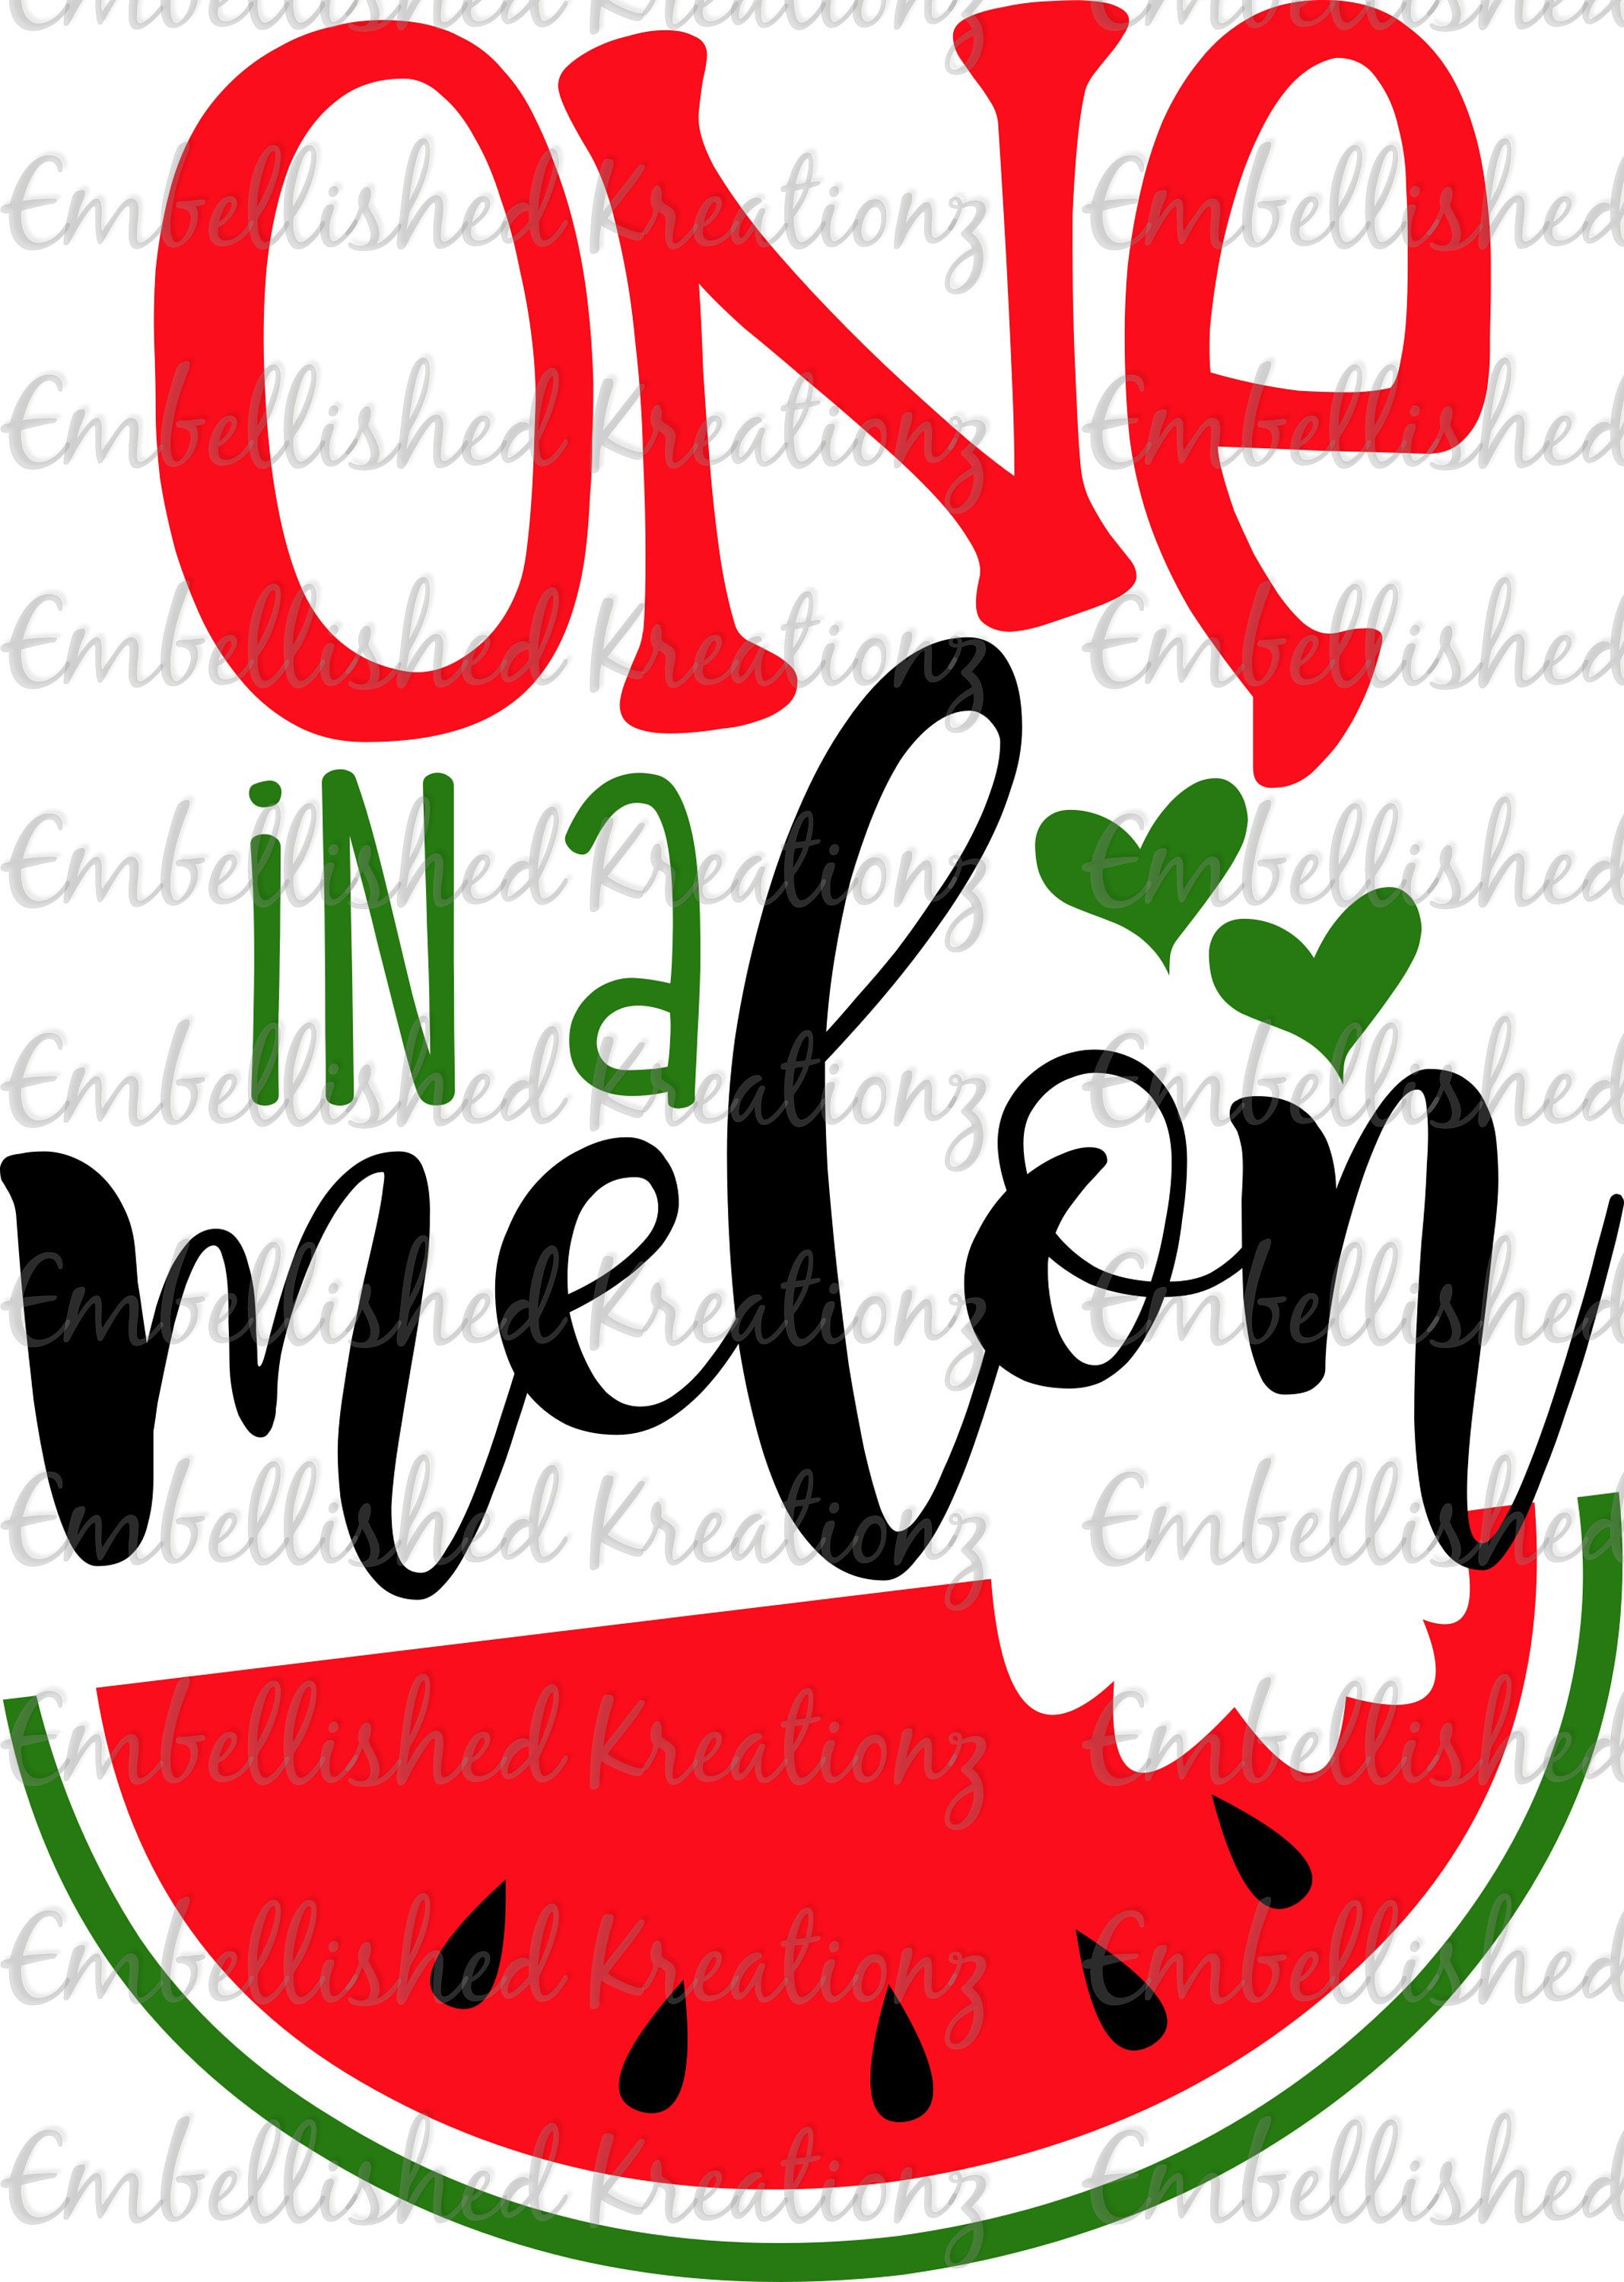 Watermelon/'One in a Melon' with Watermelon/Hearts Vinyl OR